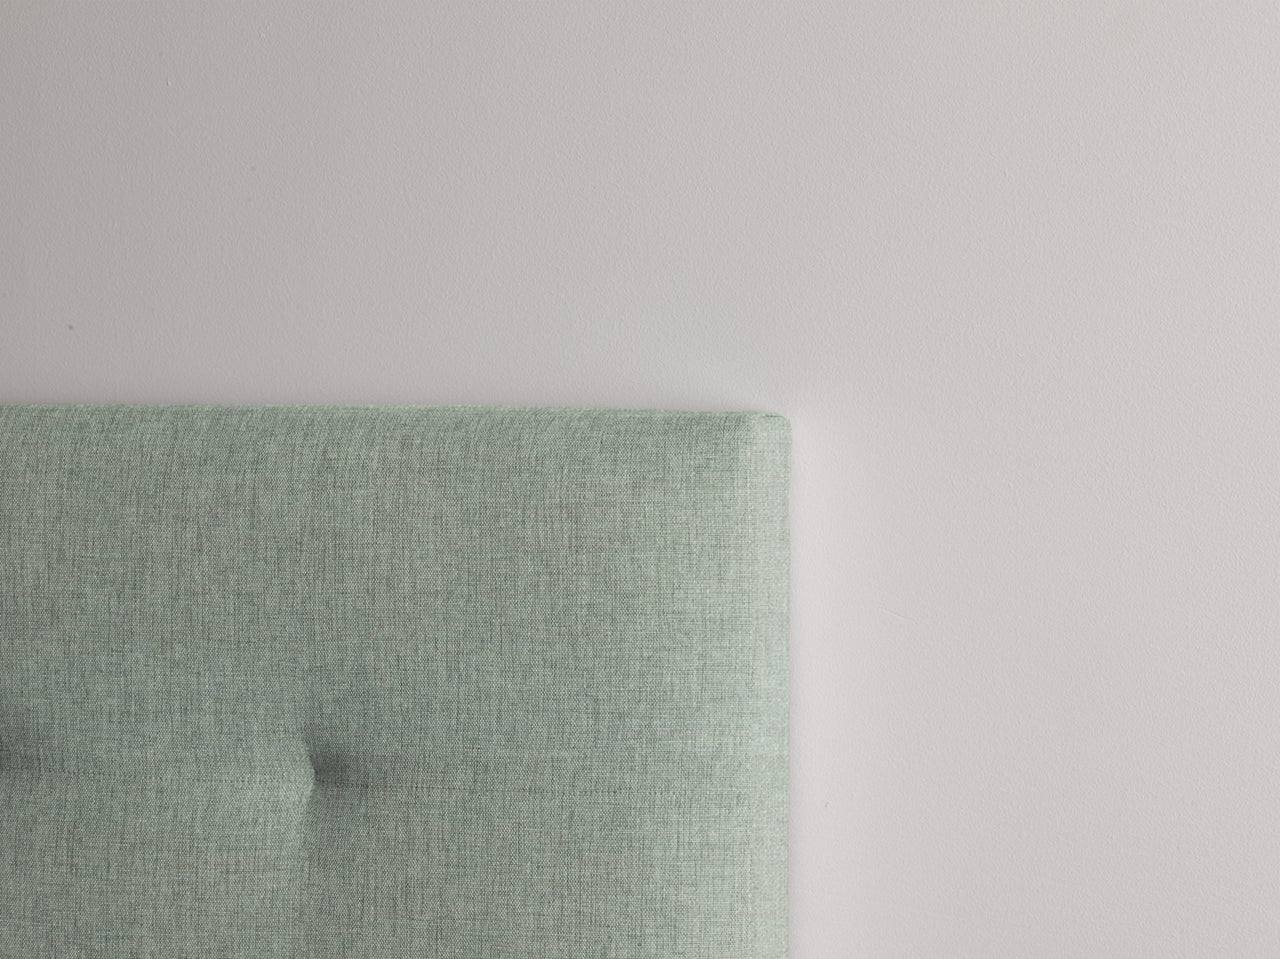 Optima Seafoam fabric sample